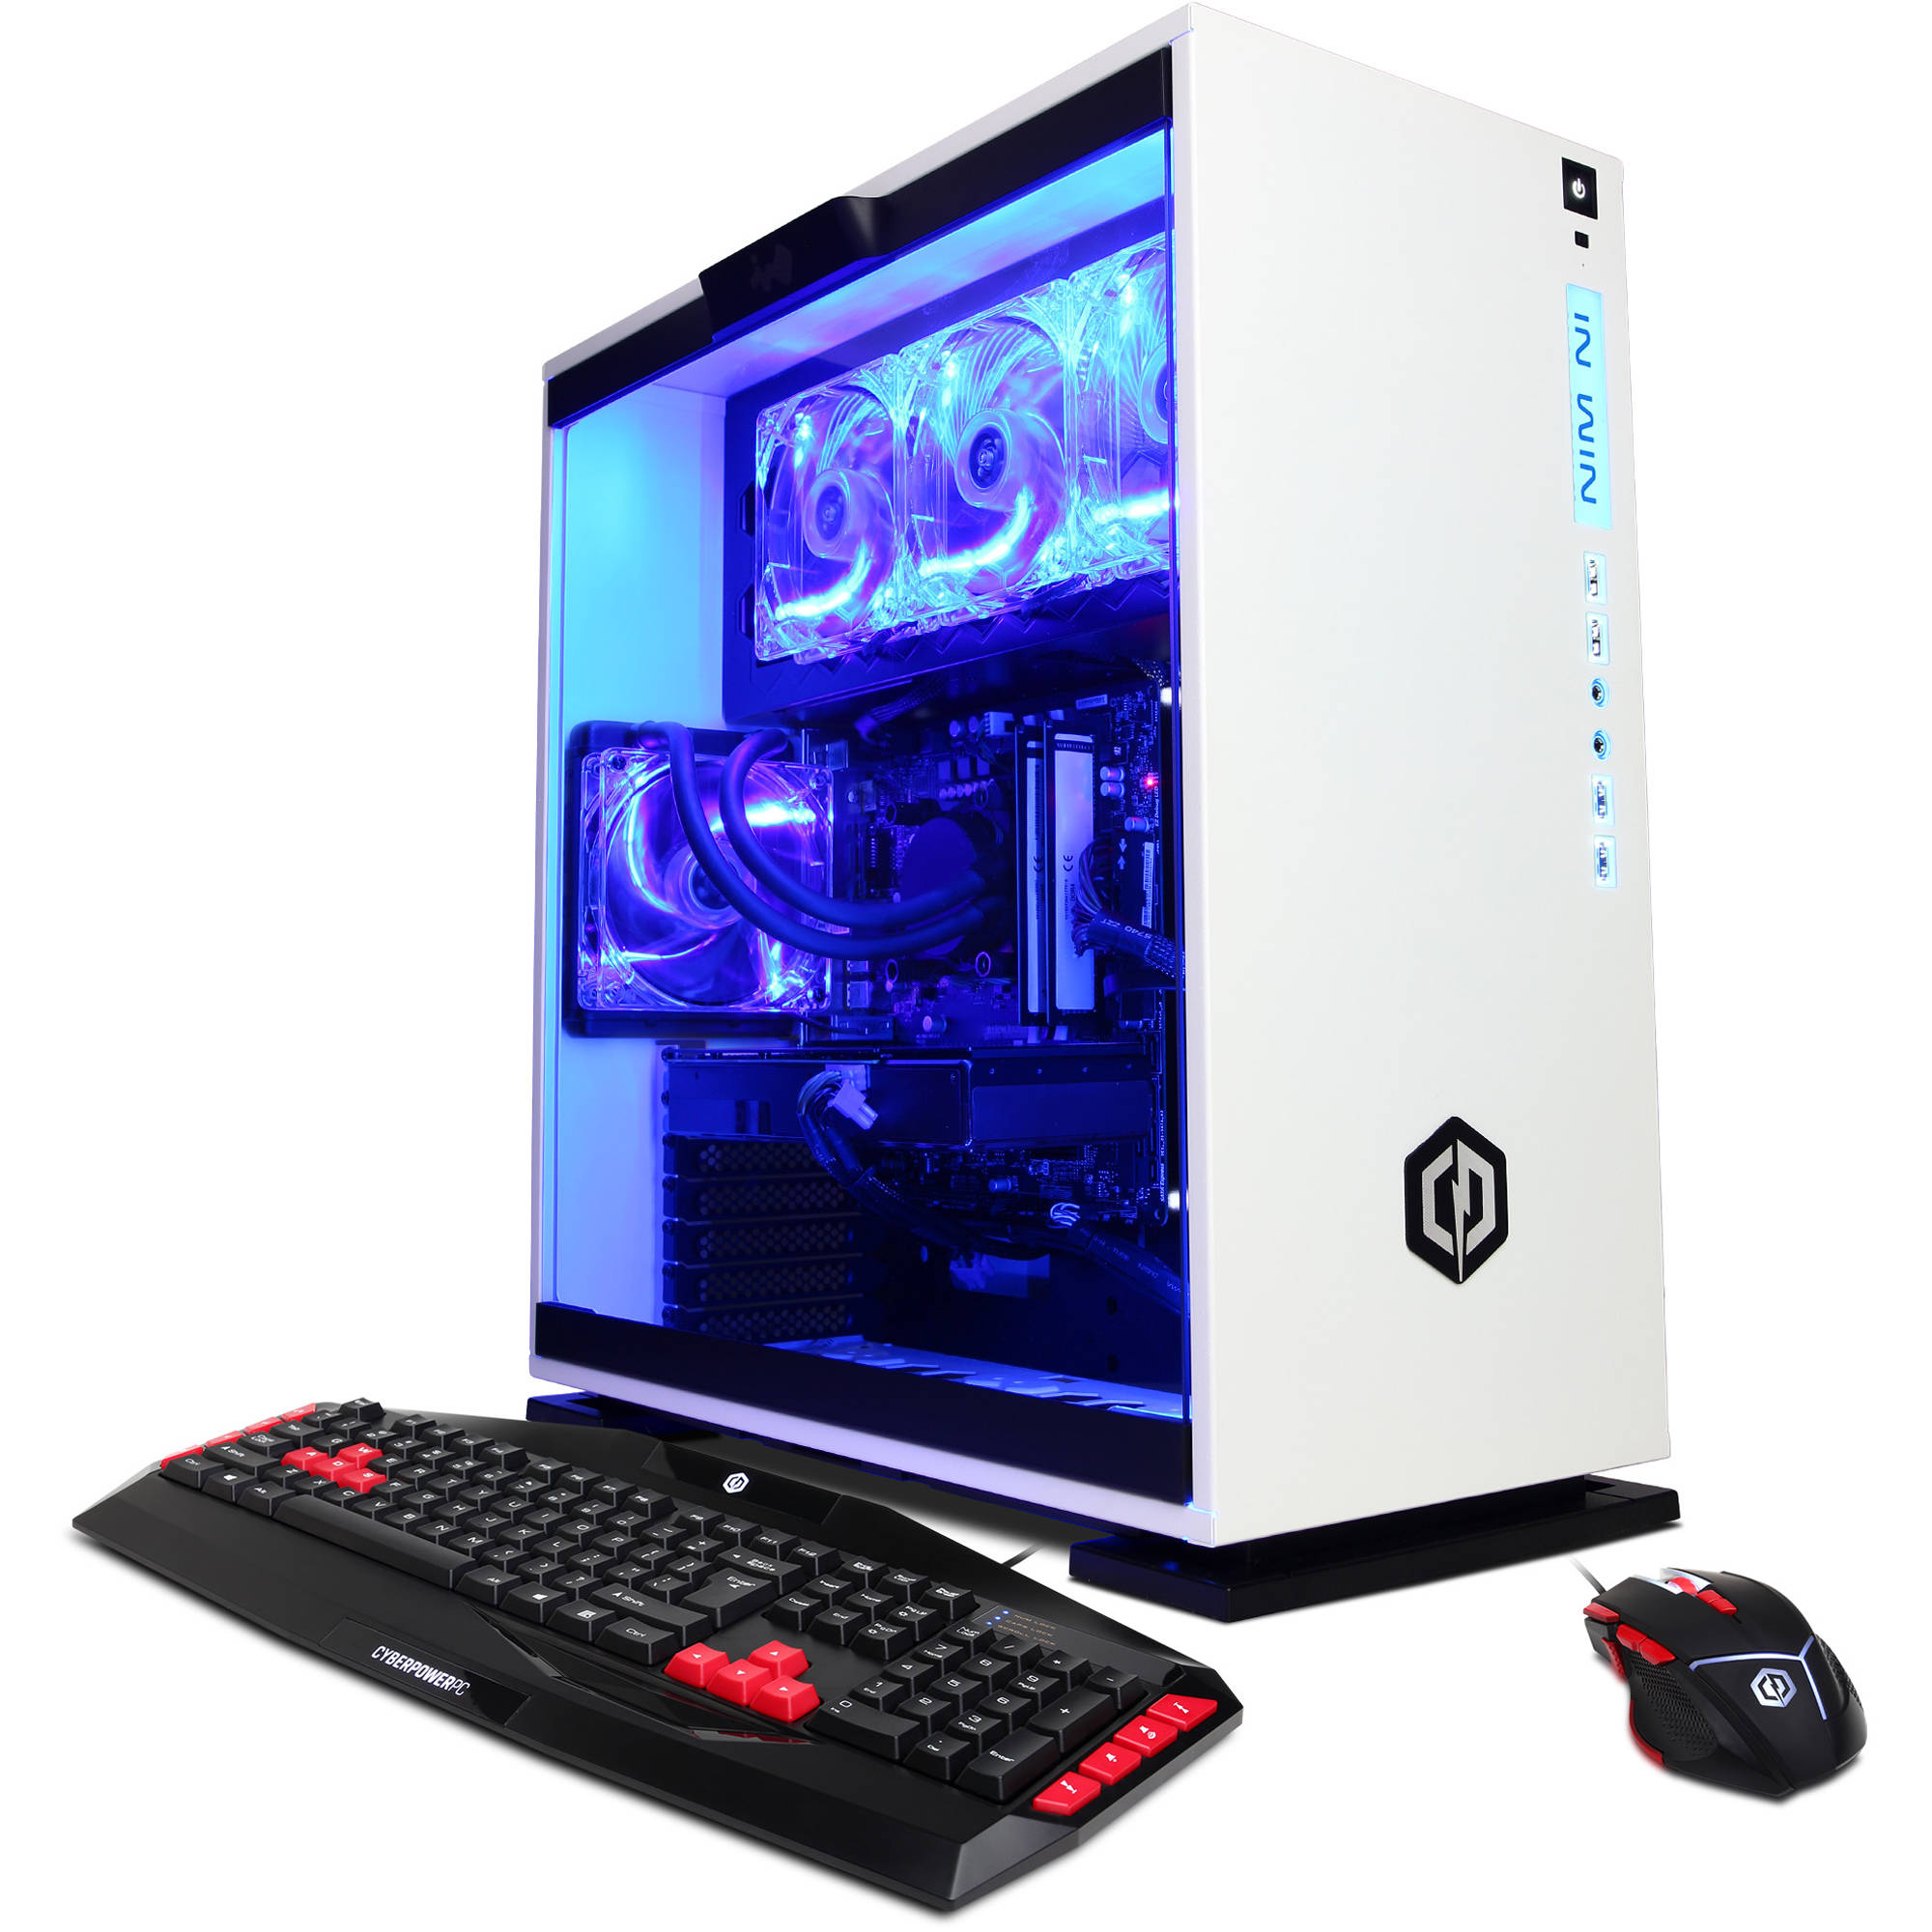 Cyberpowerpc Gamer Supreme Liquid Cool Slc9820 Desktop Slc9820